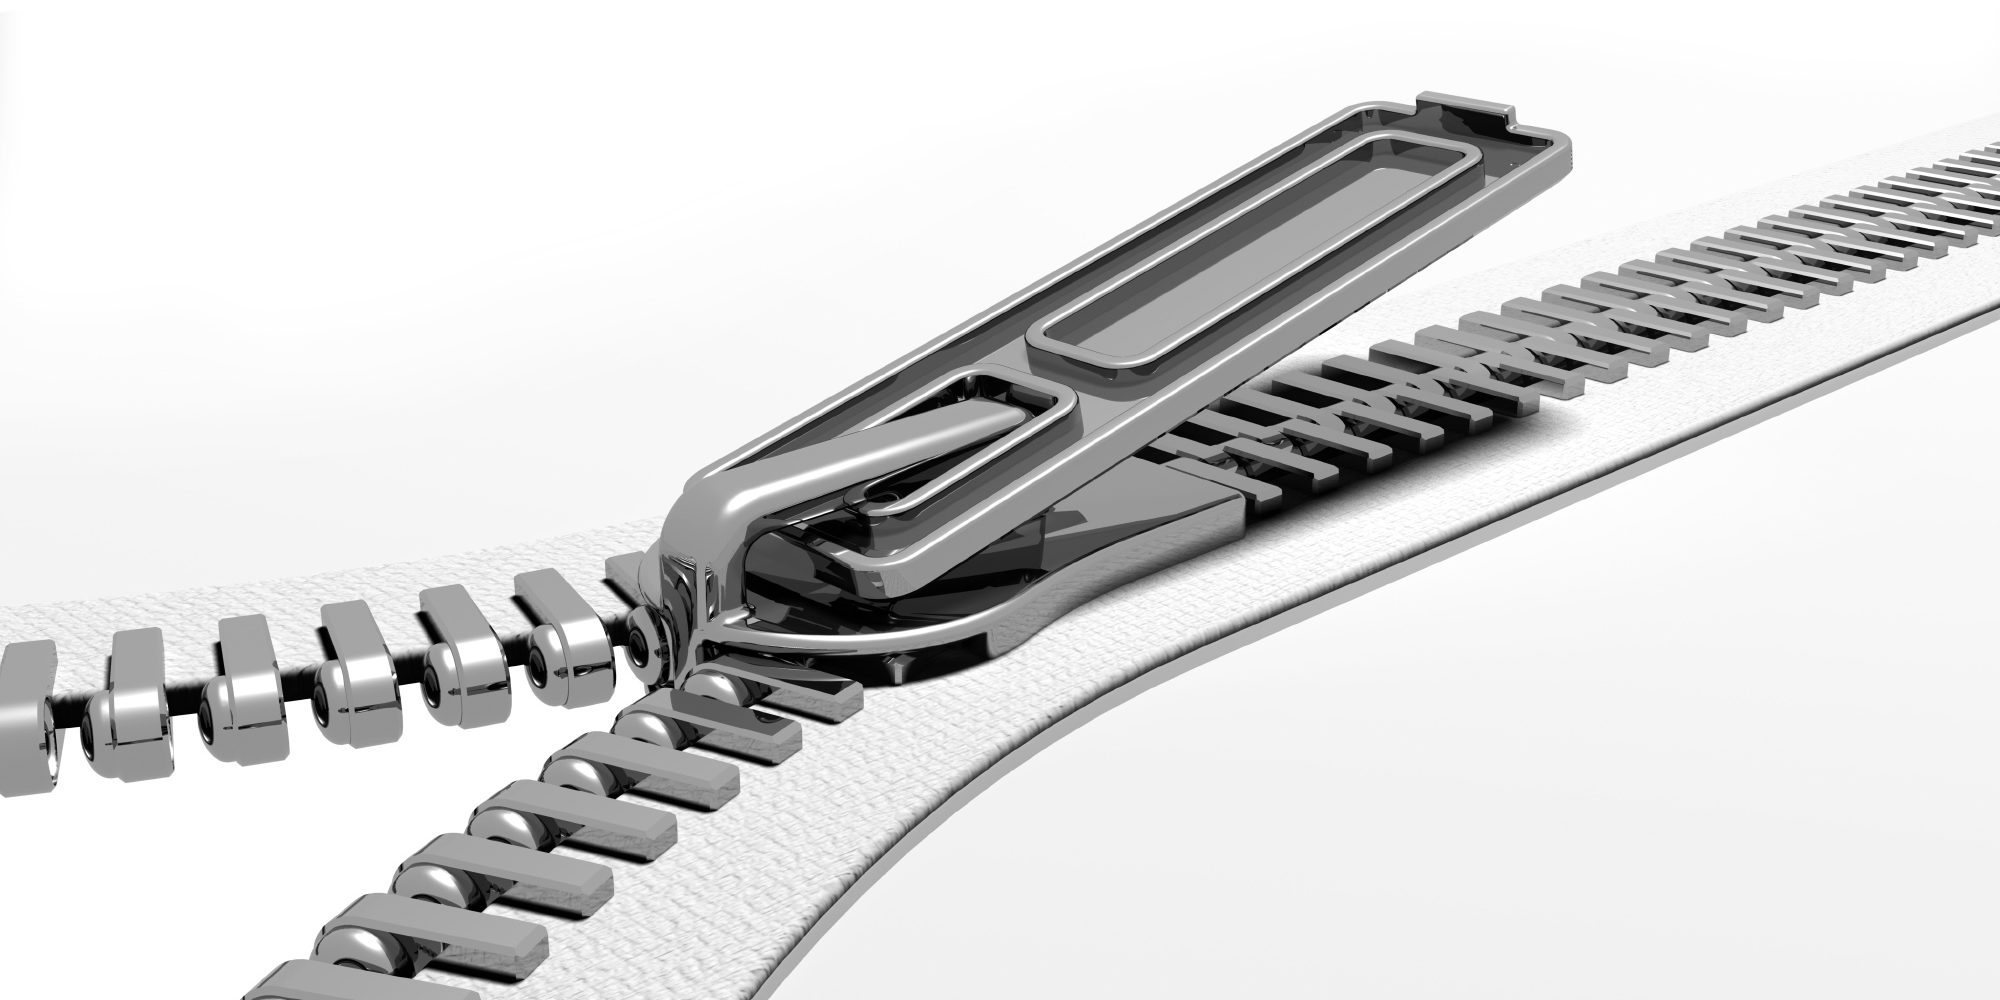 3D render of a zipper opening